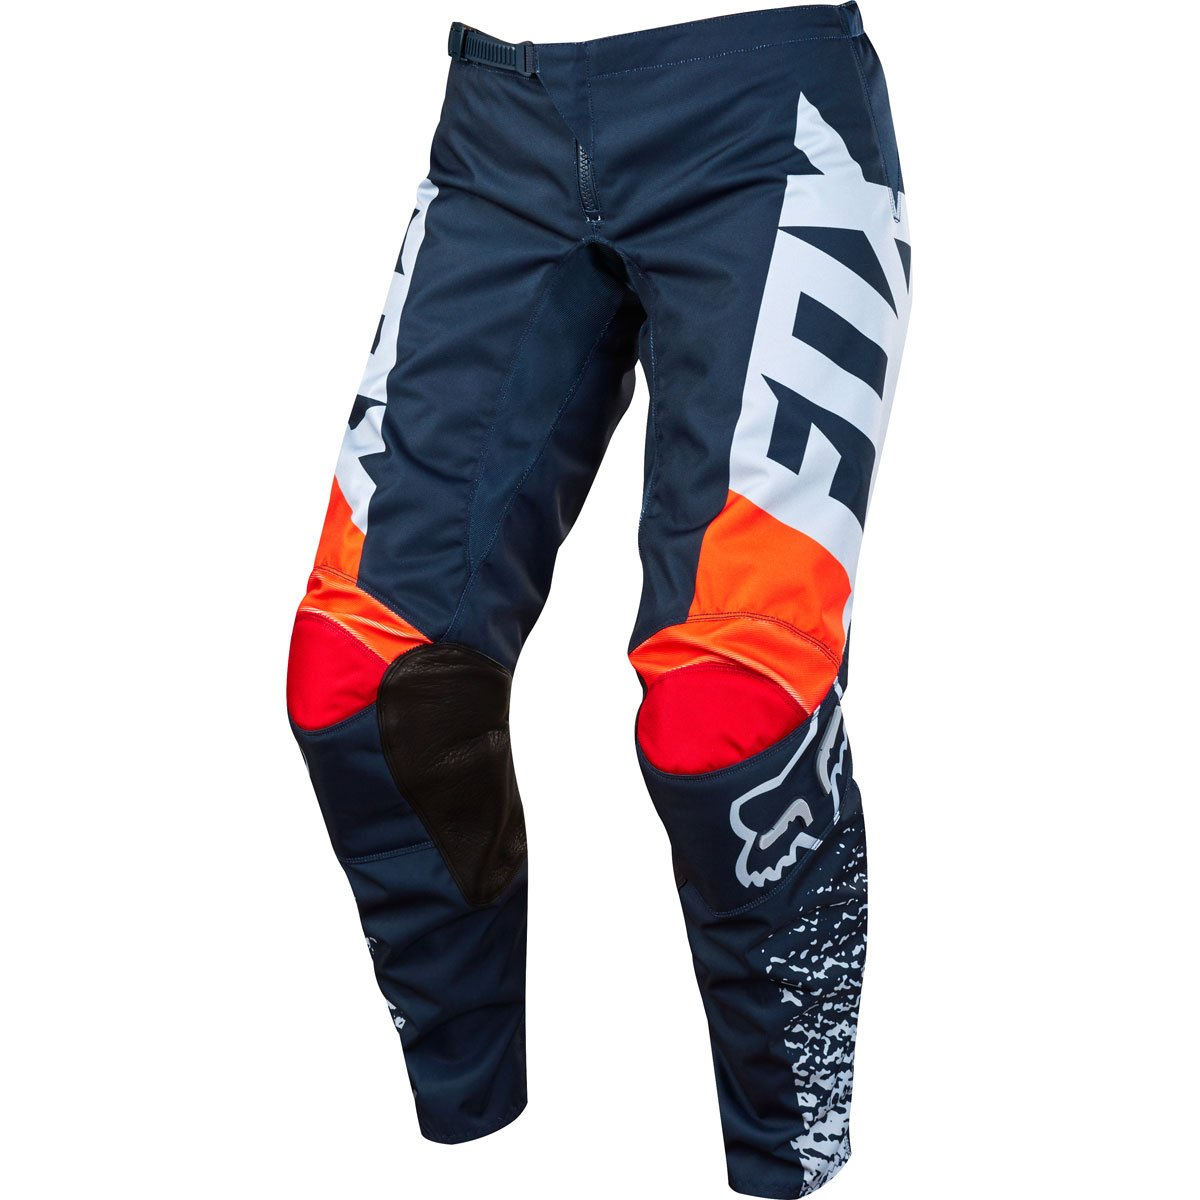 2018 Fox Racing Kids Girls 180 Pants-Grey/Orange-K5